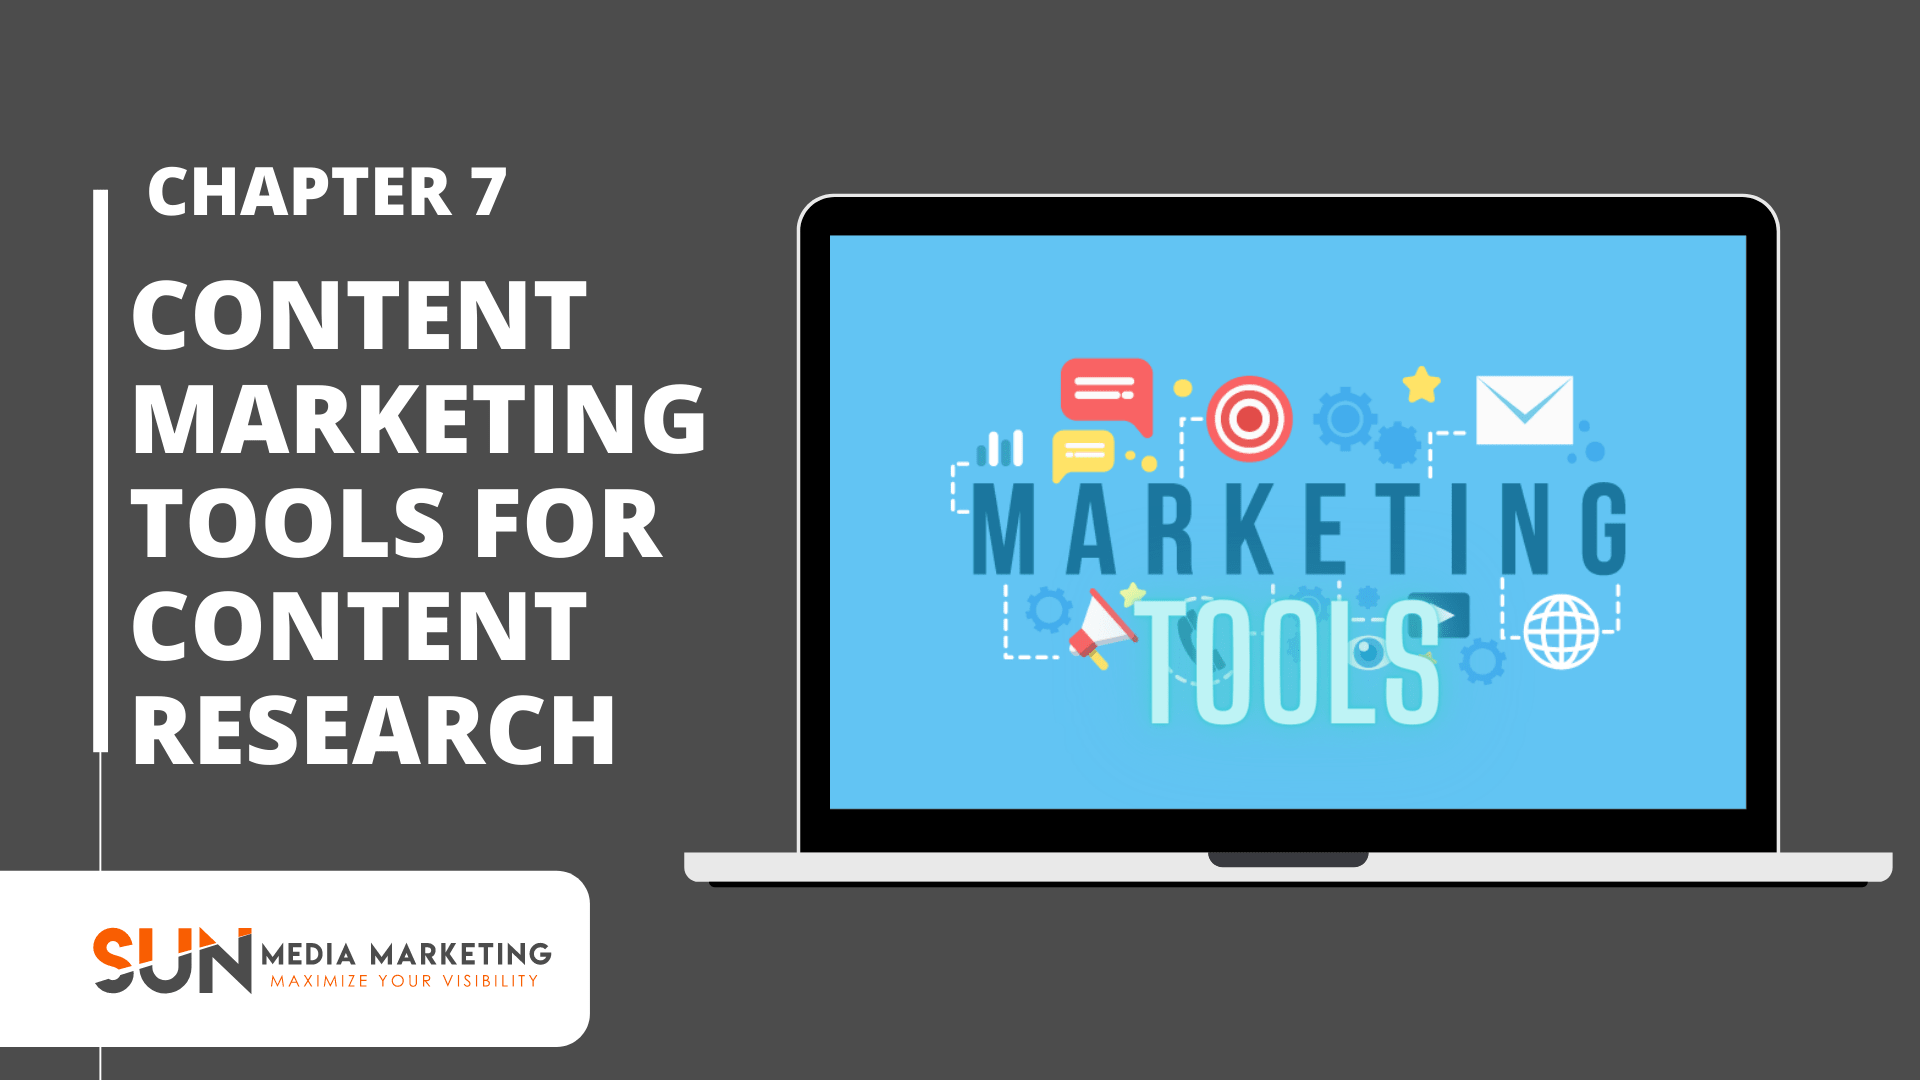 7 Content Marketing Tools for Content Research